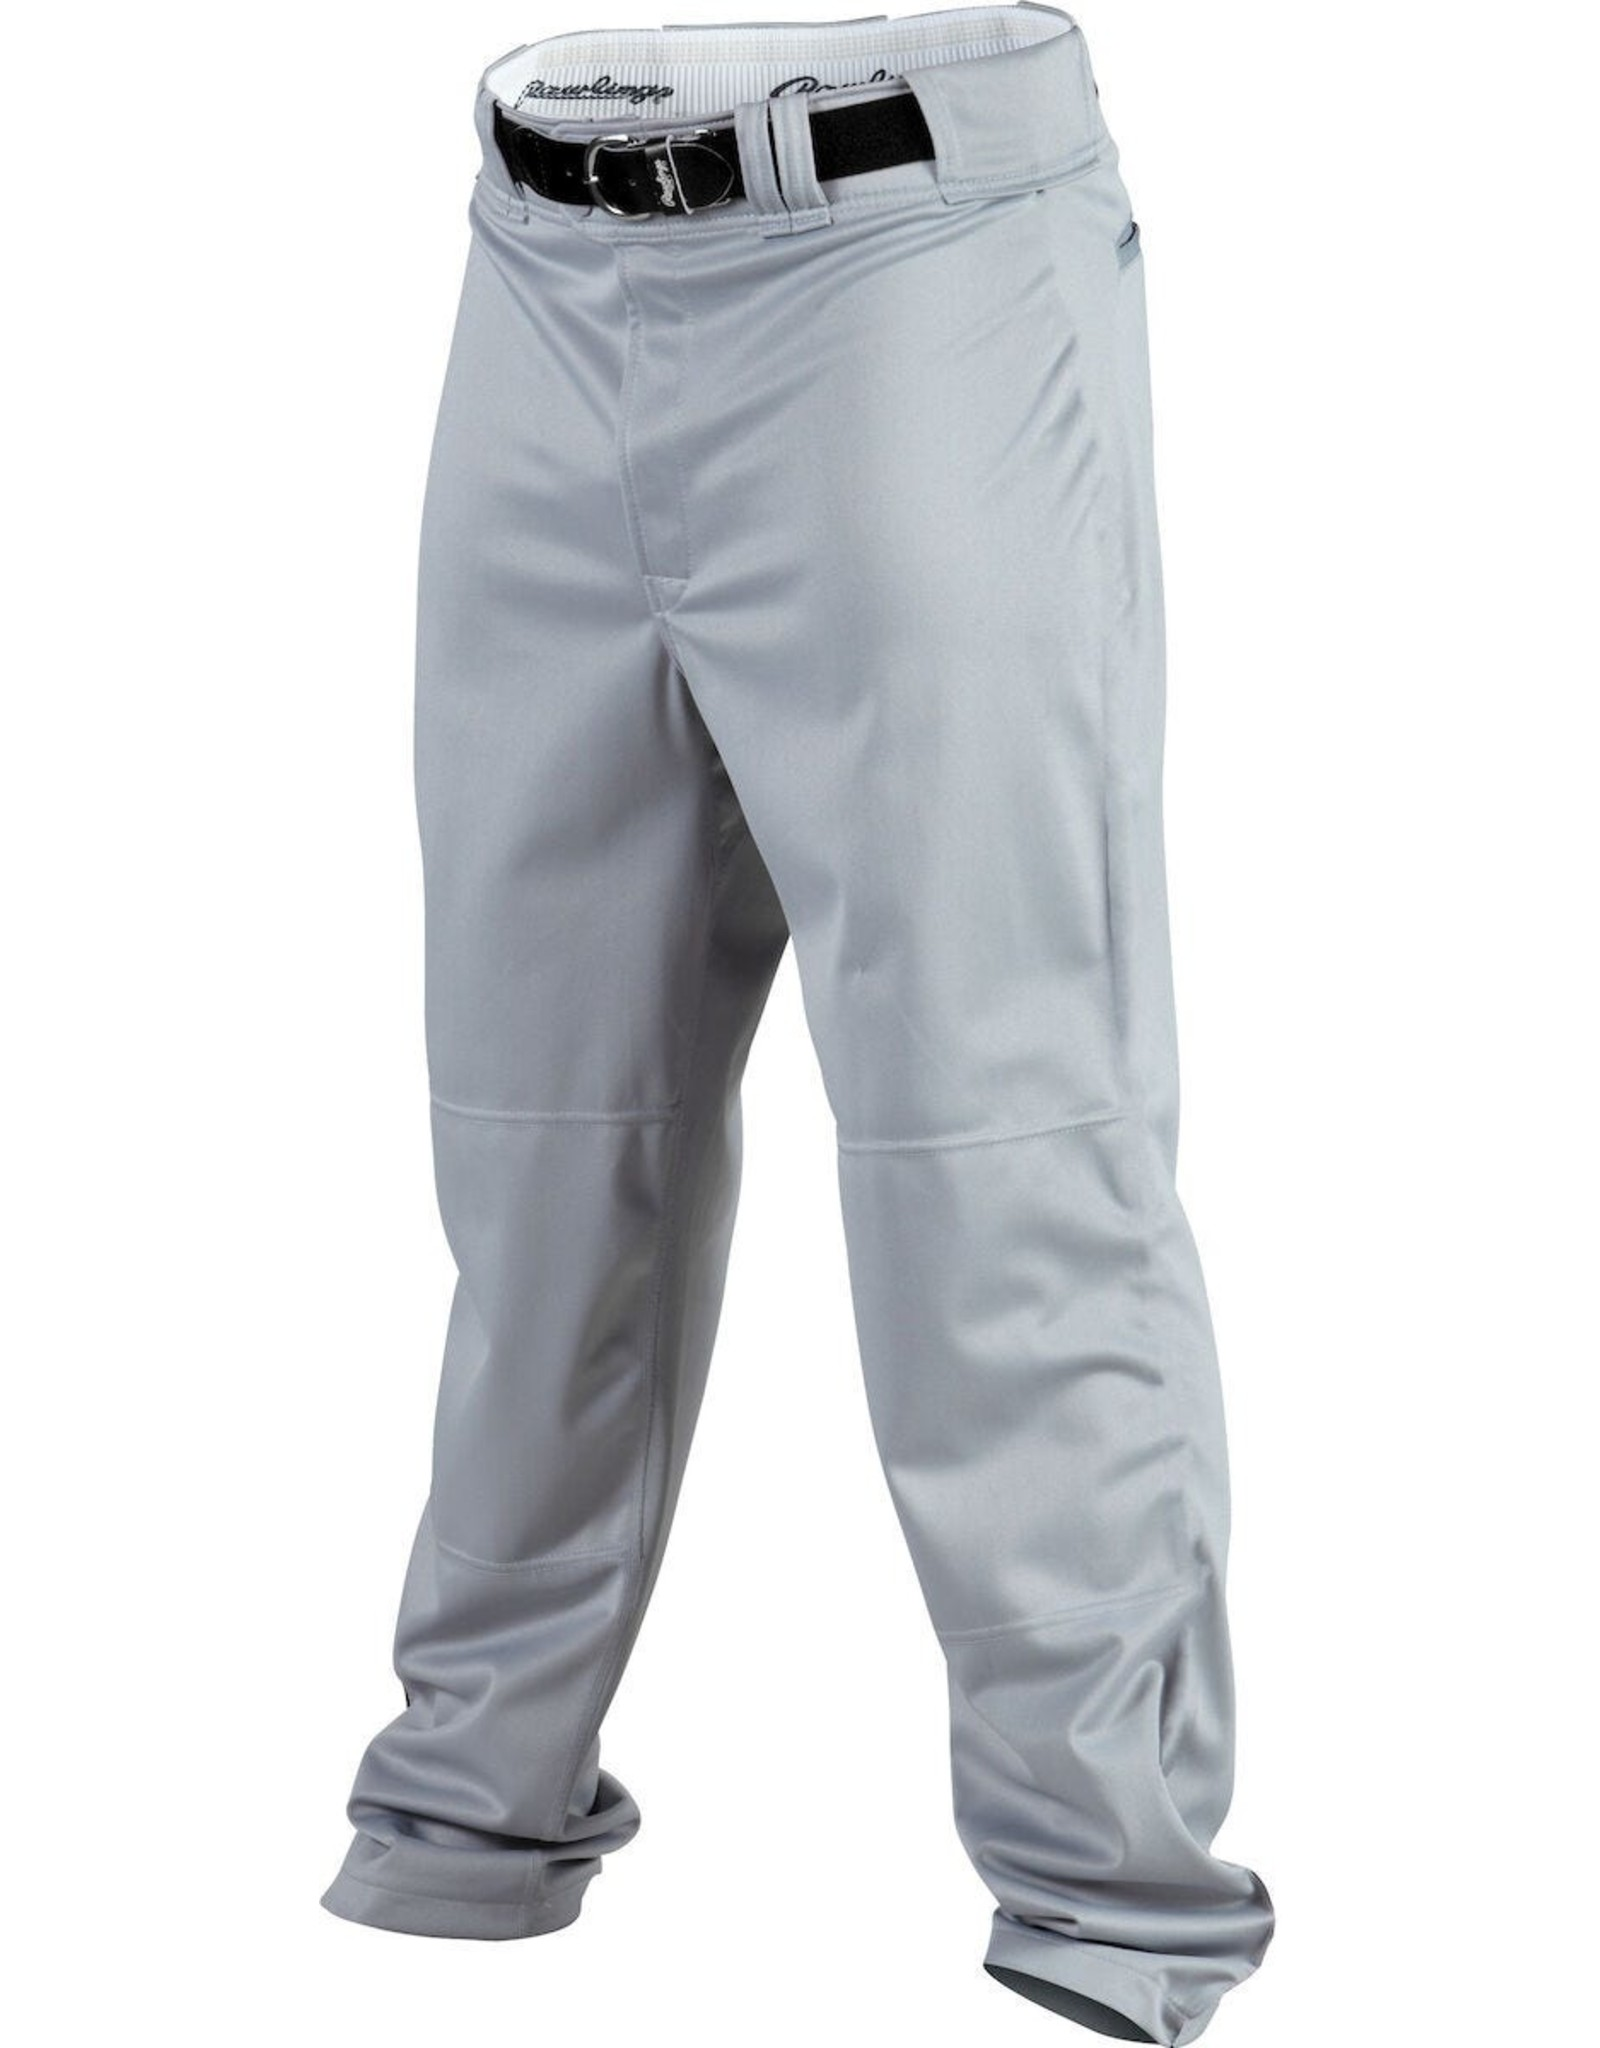 RAWLINGS PANTALON BASEBALL RAWLINGS LEA SR